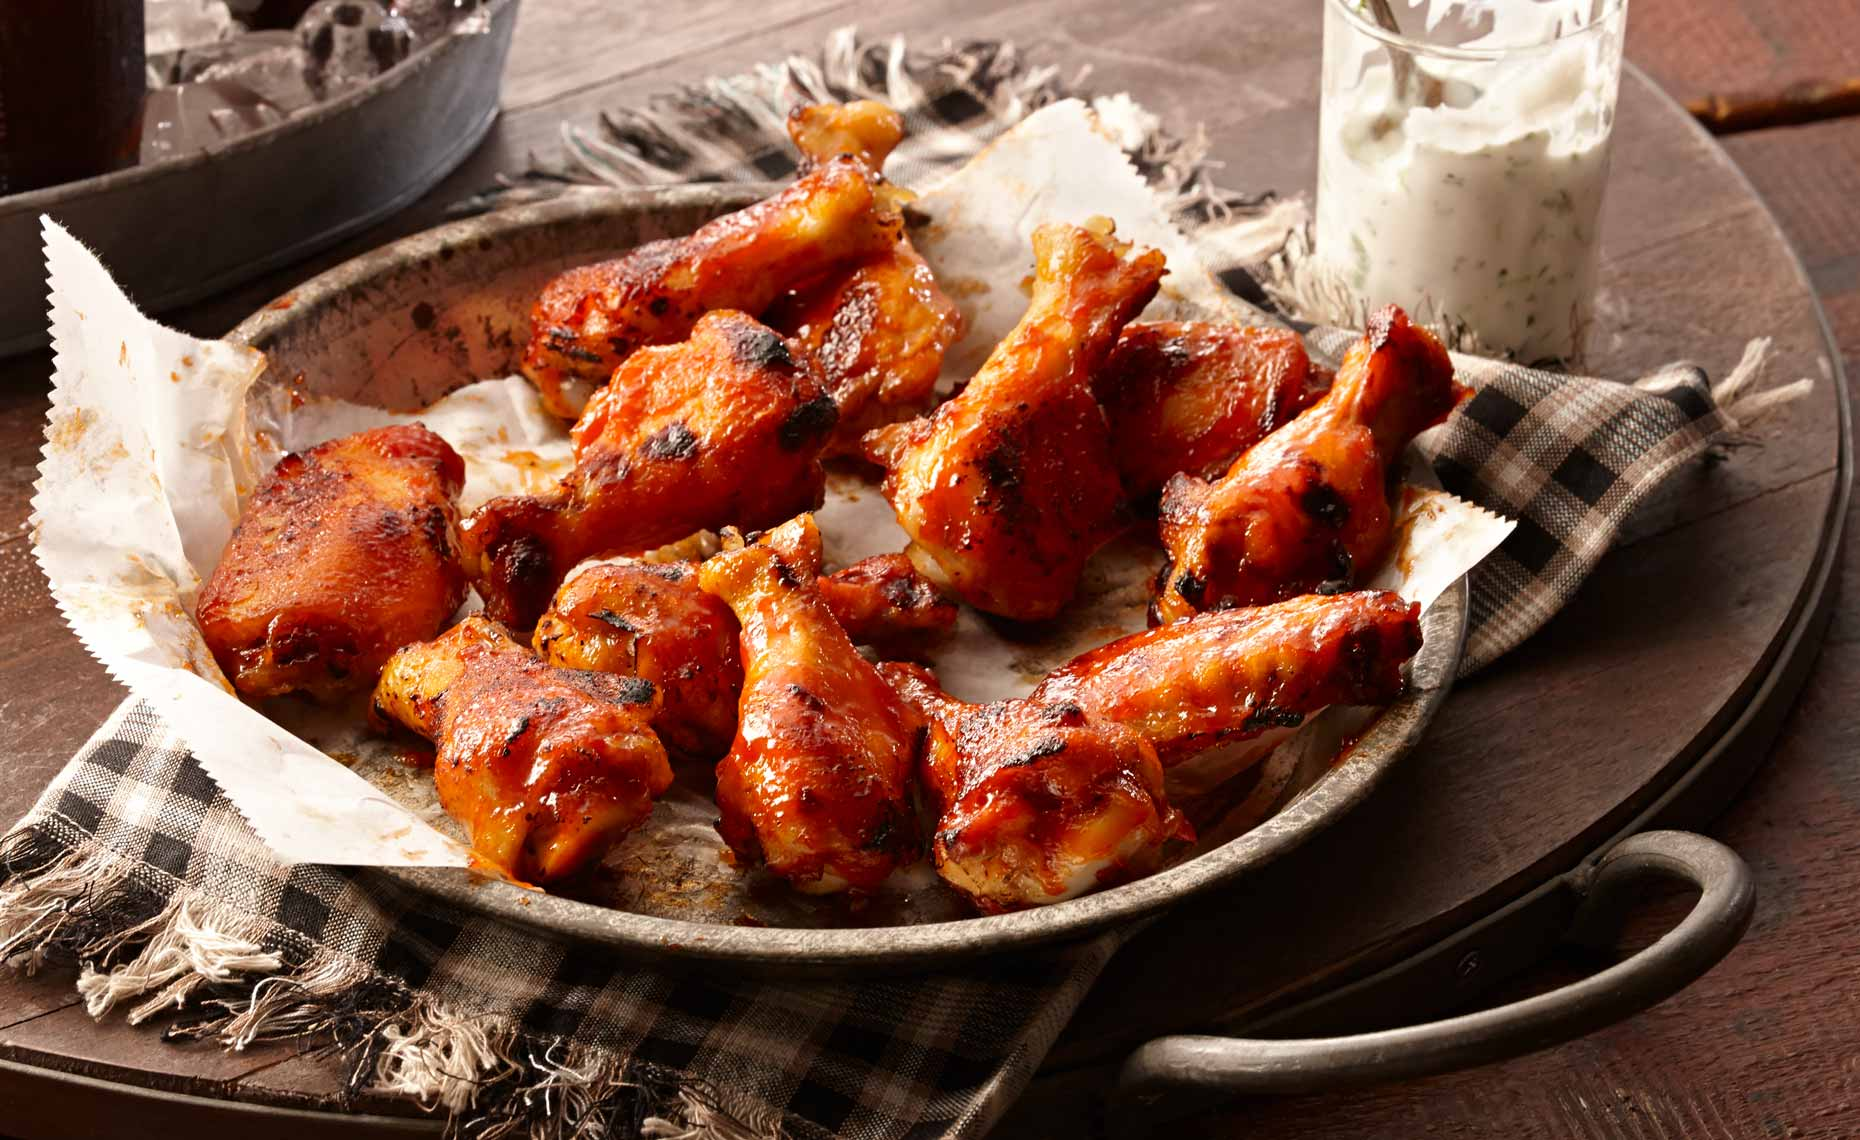 meat-photographers-chicken-wings-bbq-spicy-18